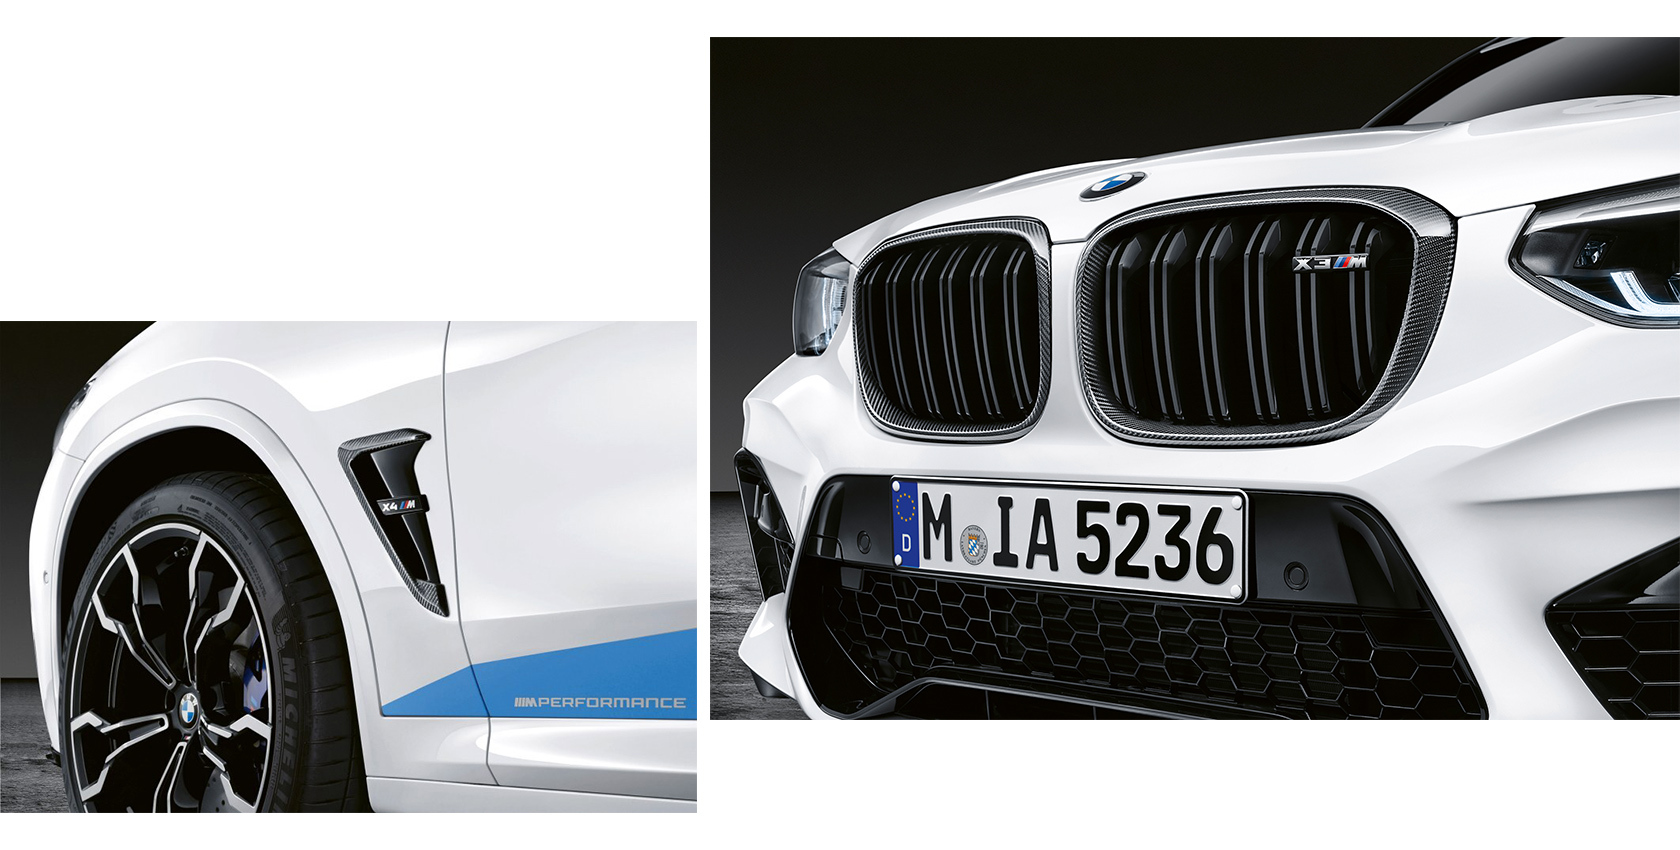 Bmw M Performance Parts For The Bmw X3 M And The Bmw X4 M